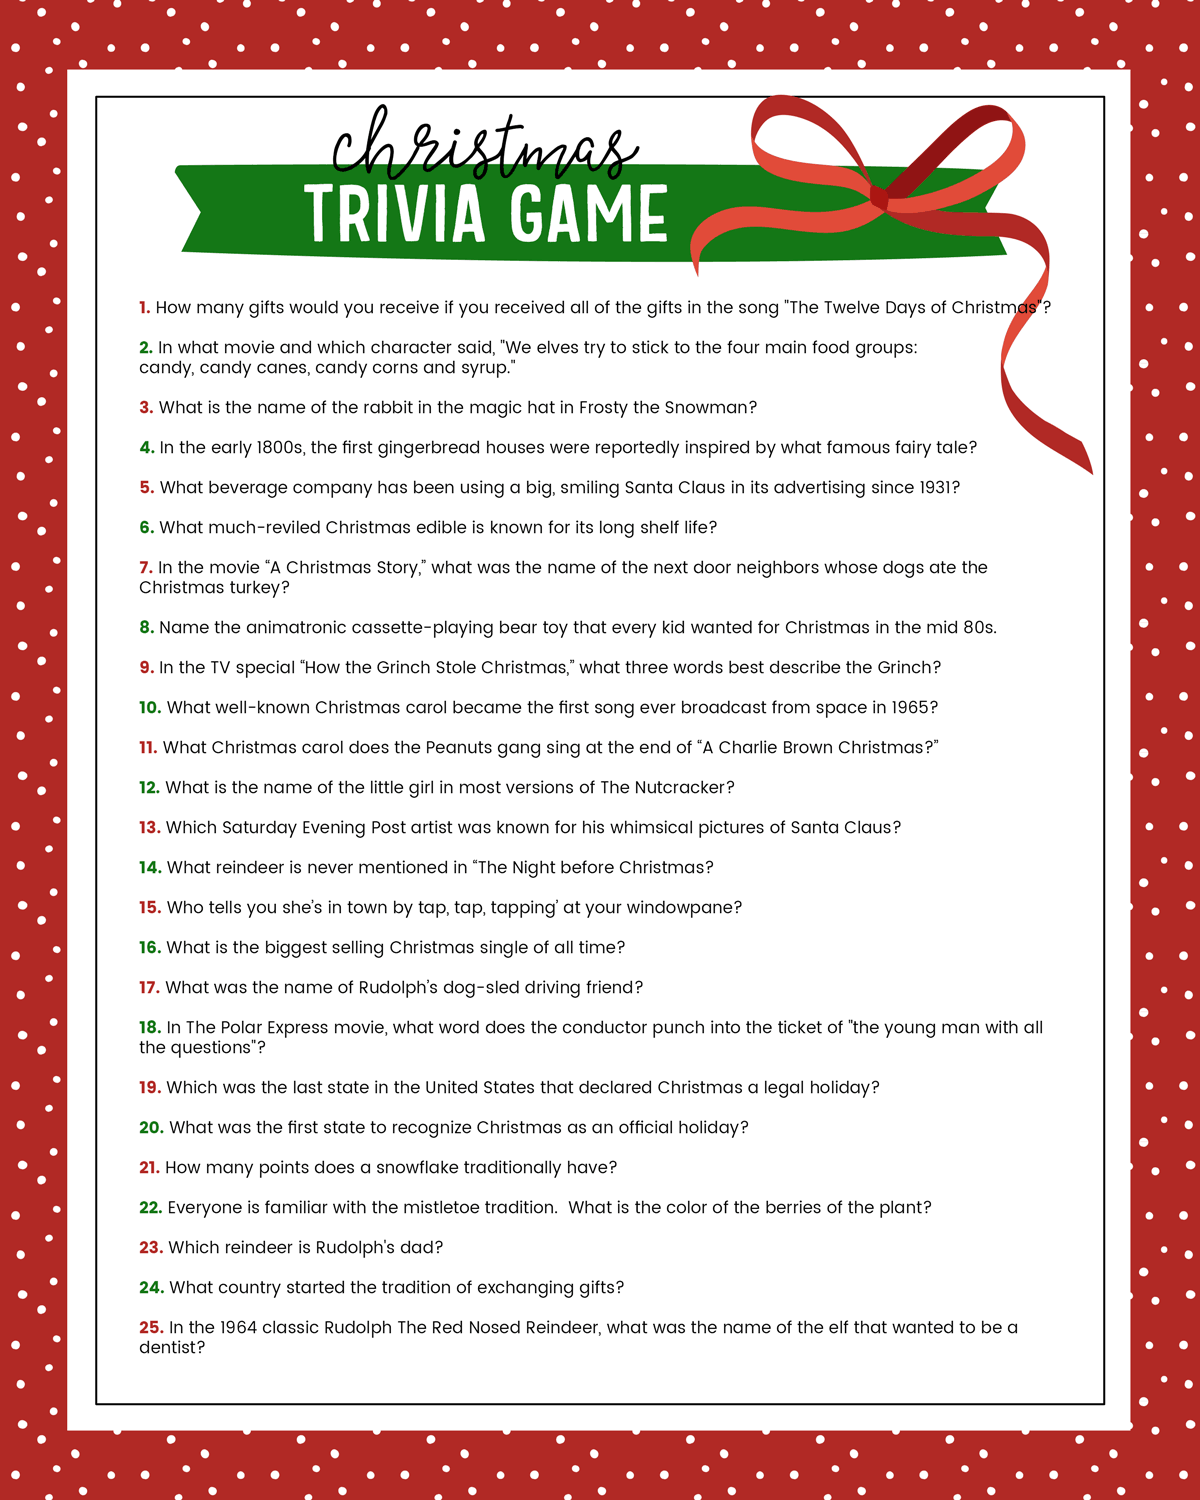 image regarding Animal Trivia Questions and Answers Printable identify Free of charge Xmas Trivia Recreation Lil Luna